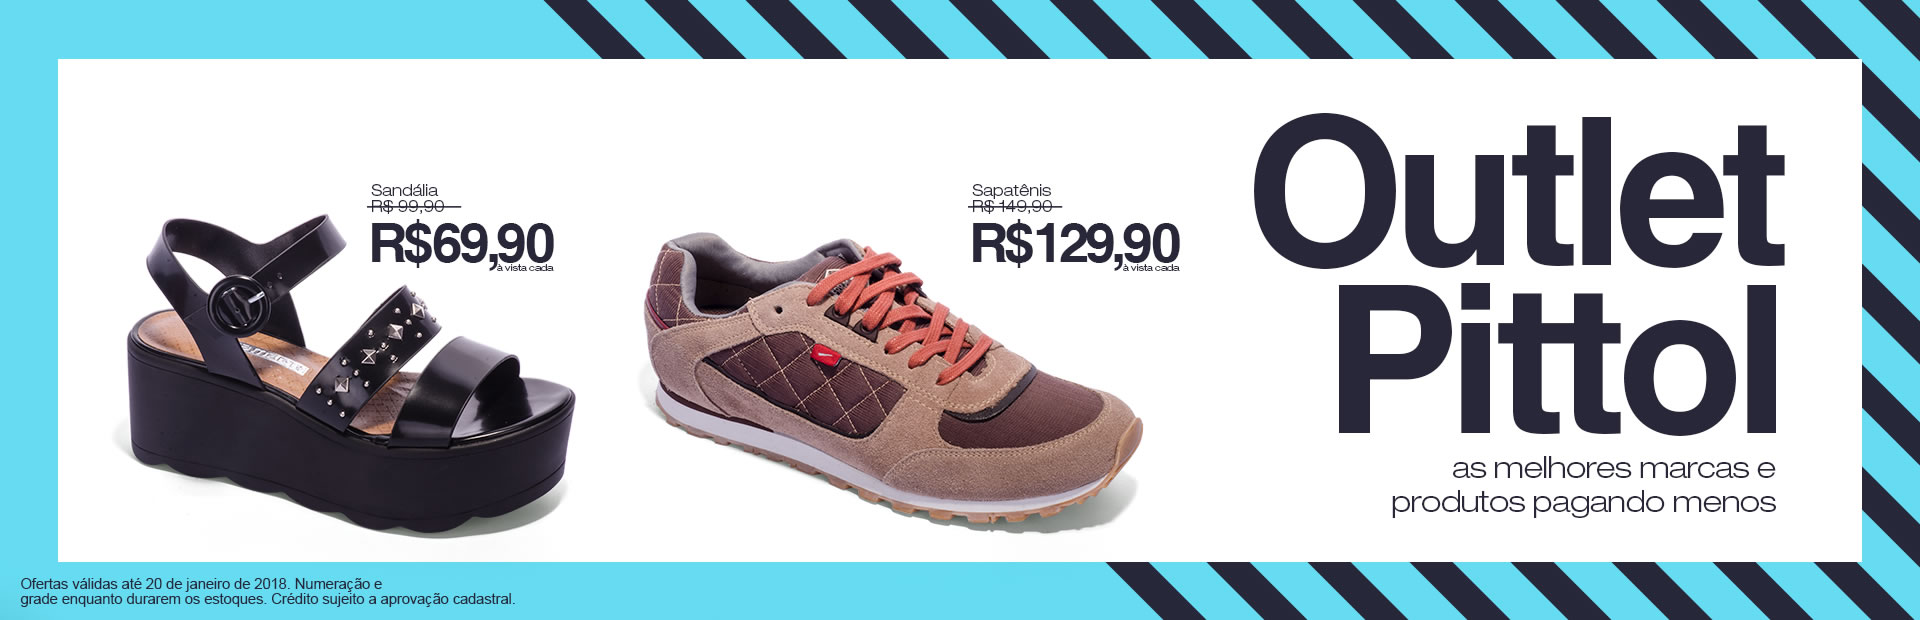 pittol_banner_topo_outlet2018_2